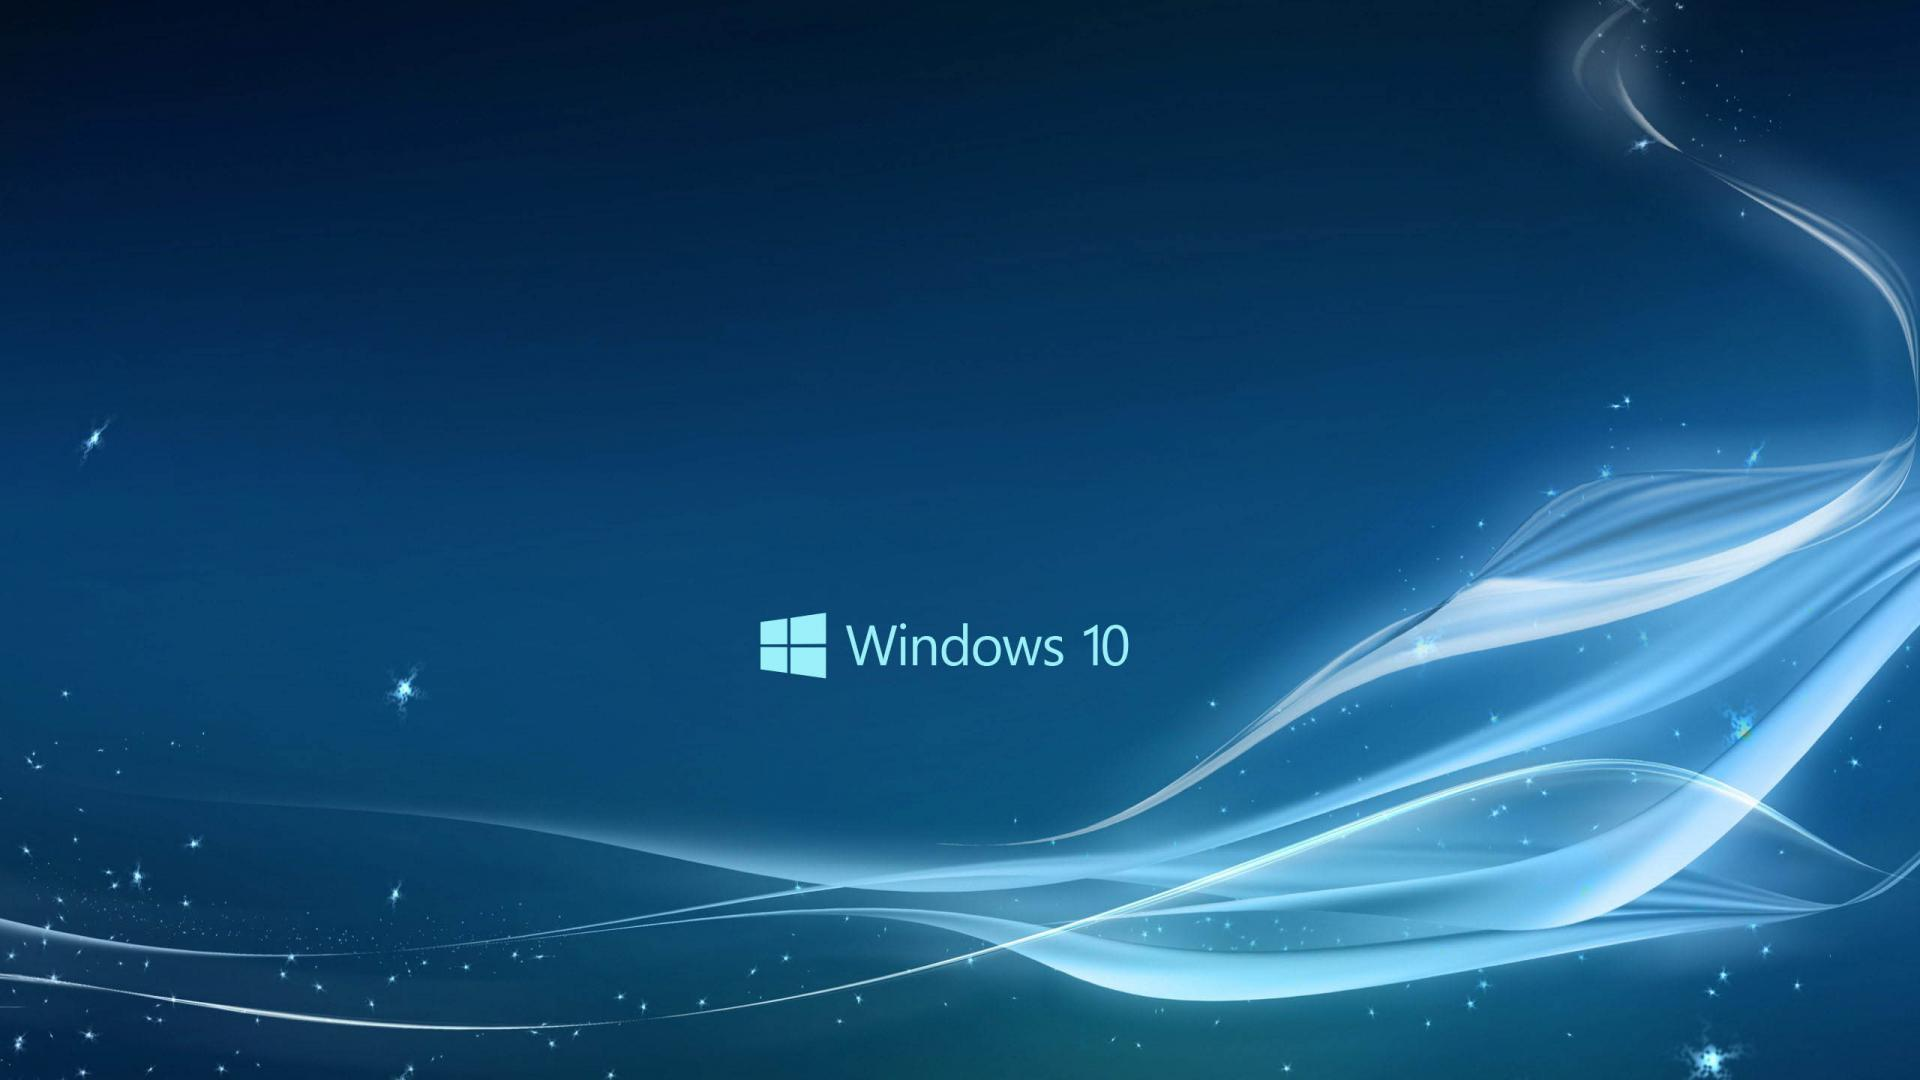 Windows 10 Wallpaper in Blue Abstract Stars and Waves HD Wallpapers 1920x1080